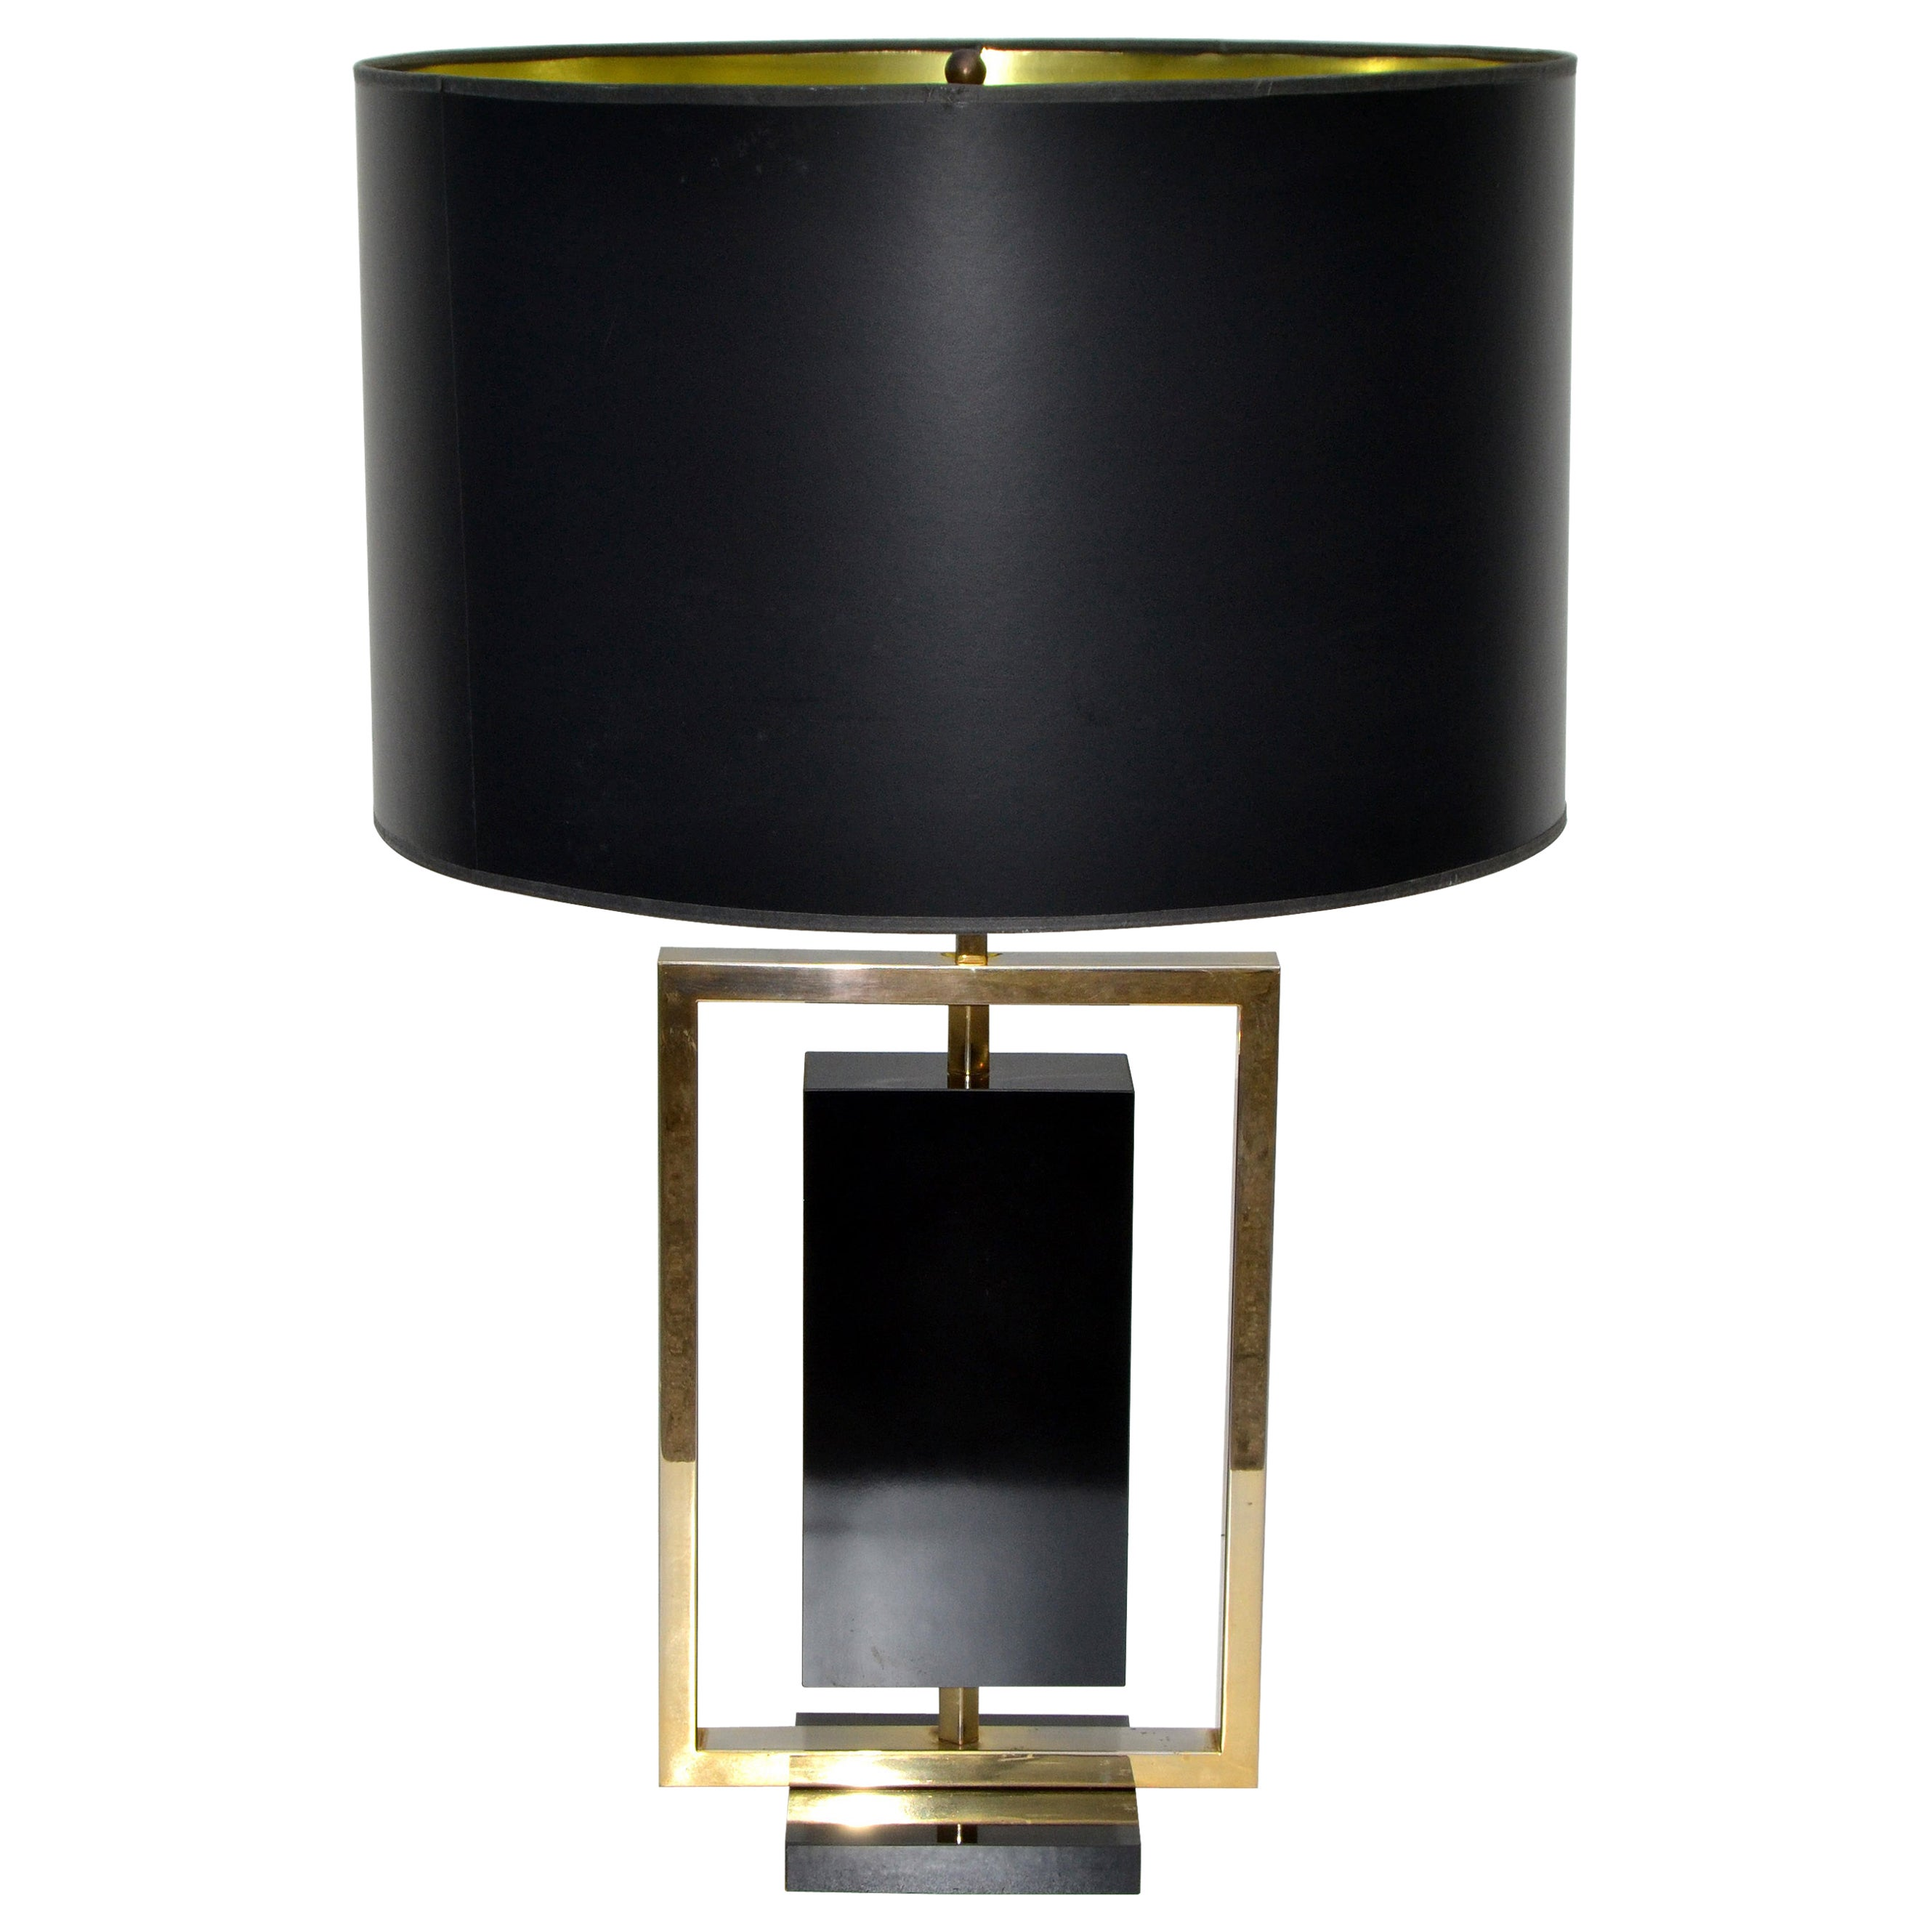 Maison Lancel Brass and Black Marble French Mid-Century Modern Table Lamp